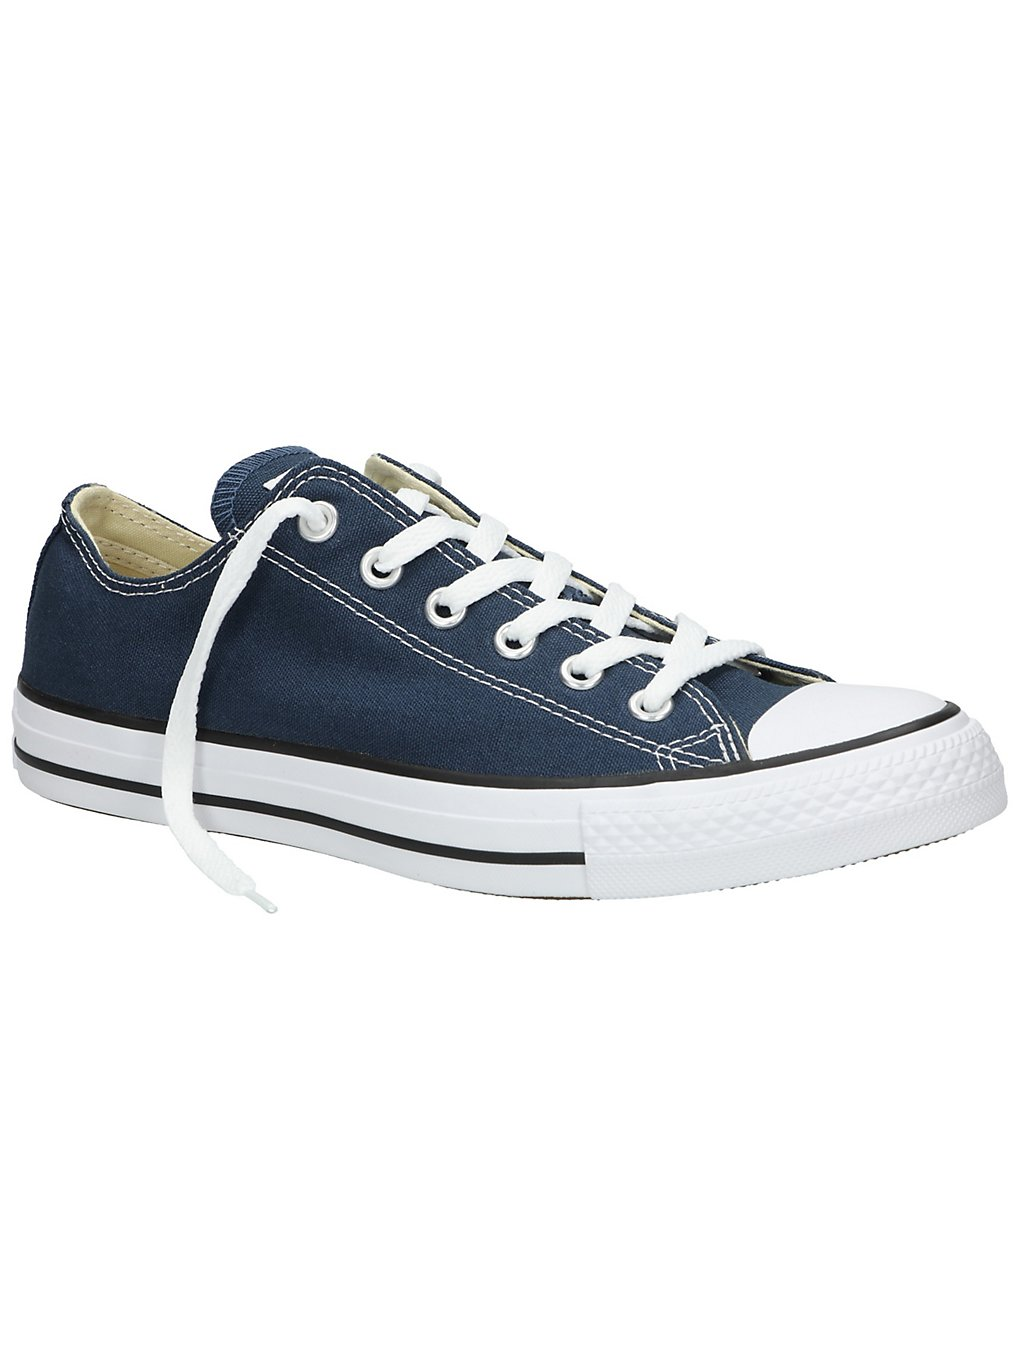 Converse Chuck Taylor All Star Core Canvas Ox Sneakers